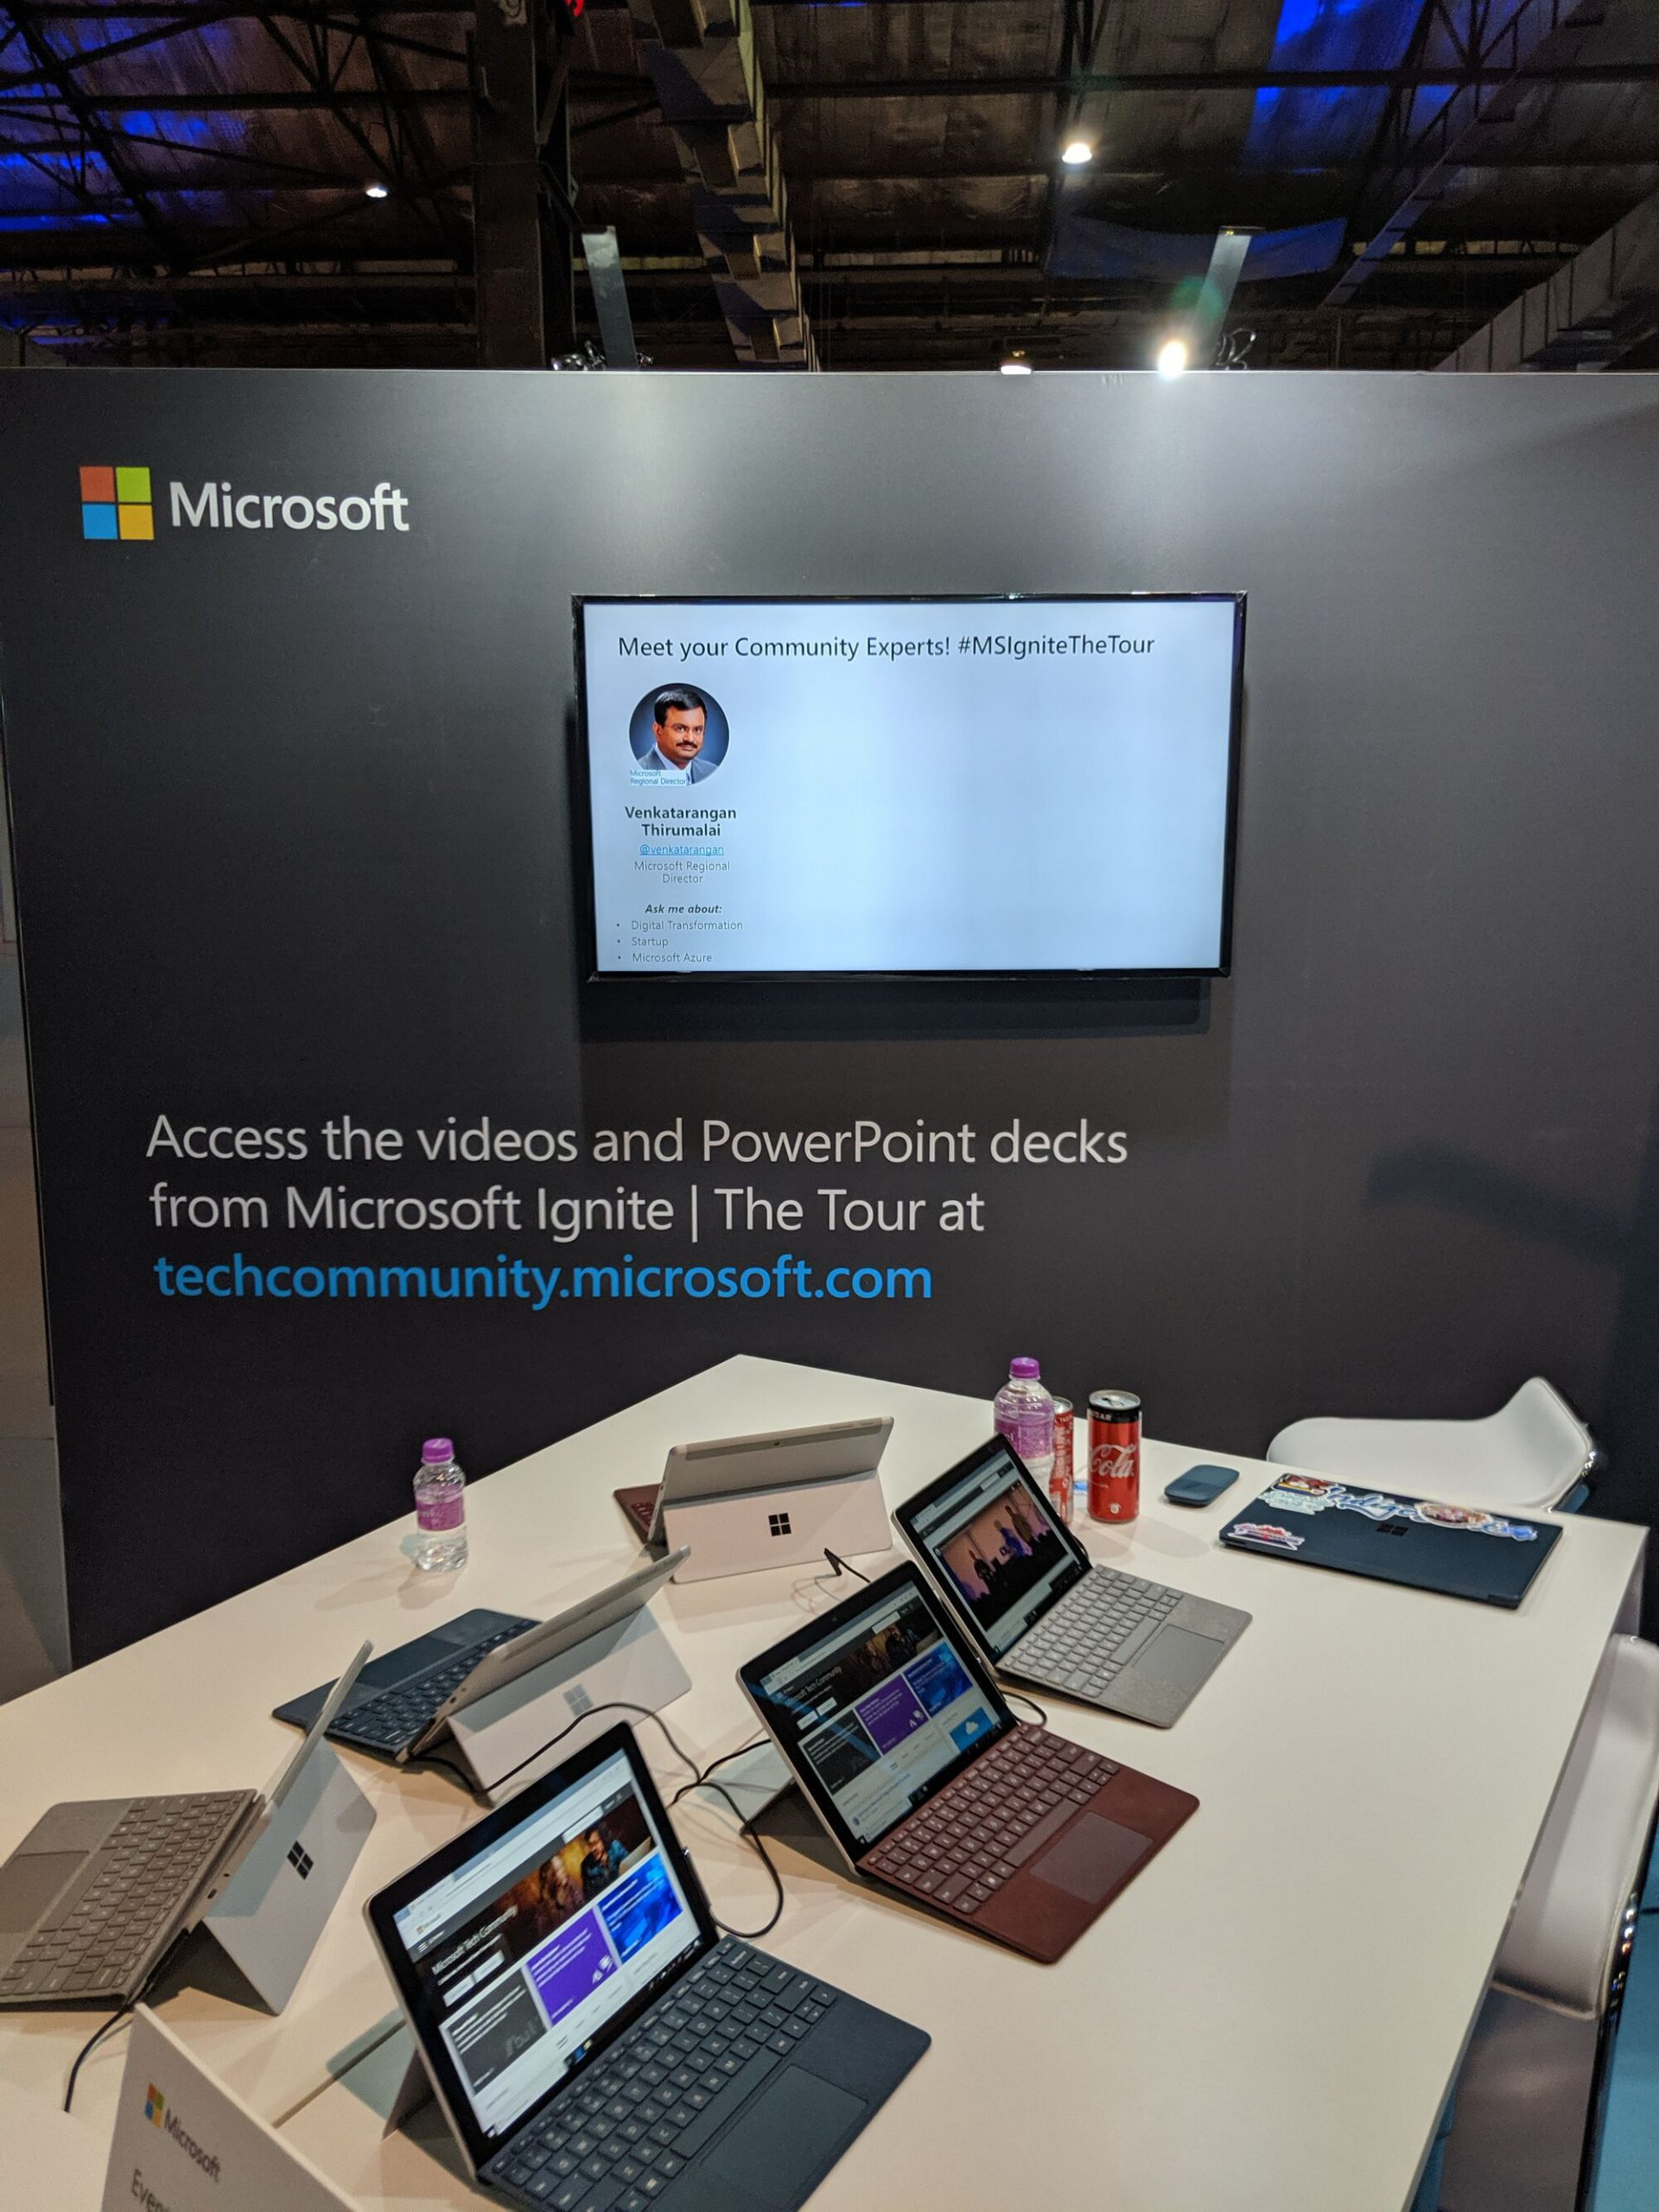 In the Microsoft Community booth, attendees could meet up with Microsoft MVPs and RDs - The Community Partners